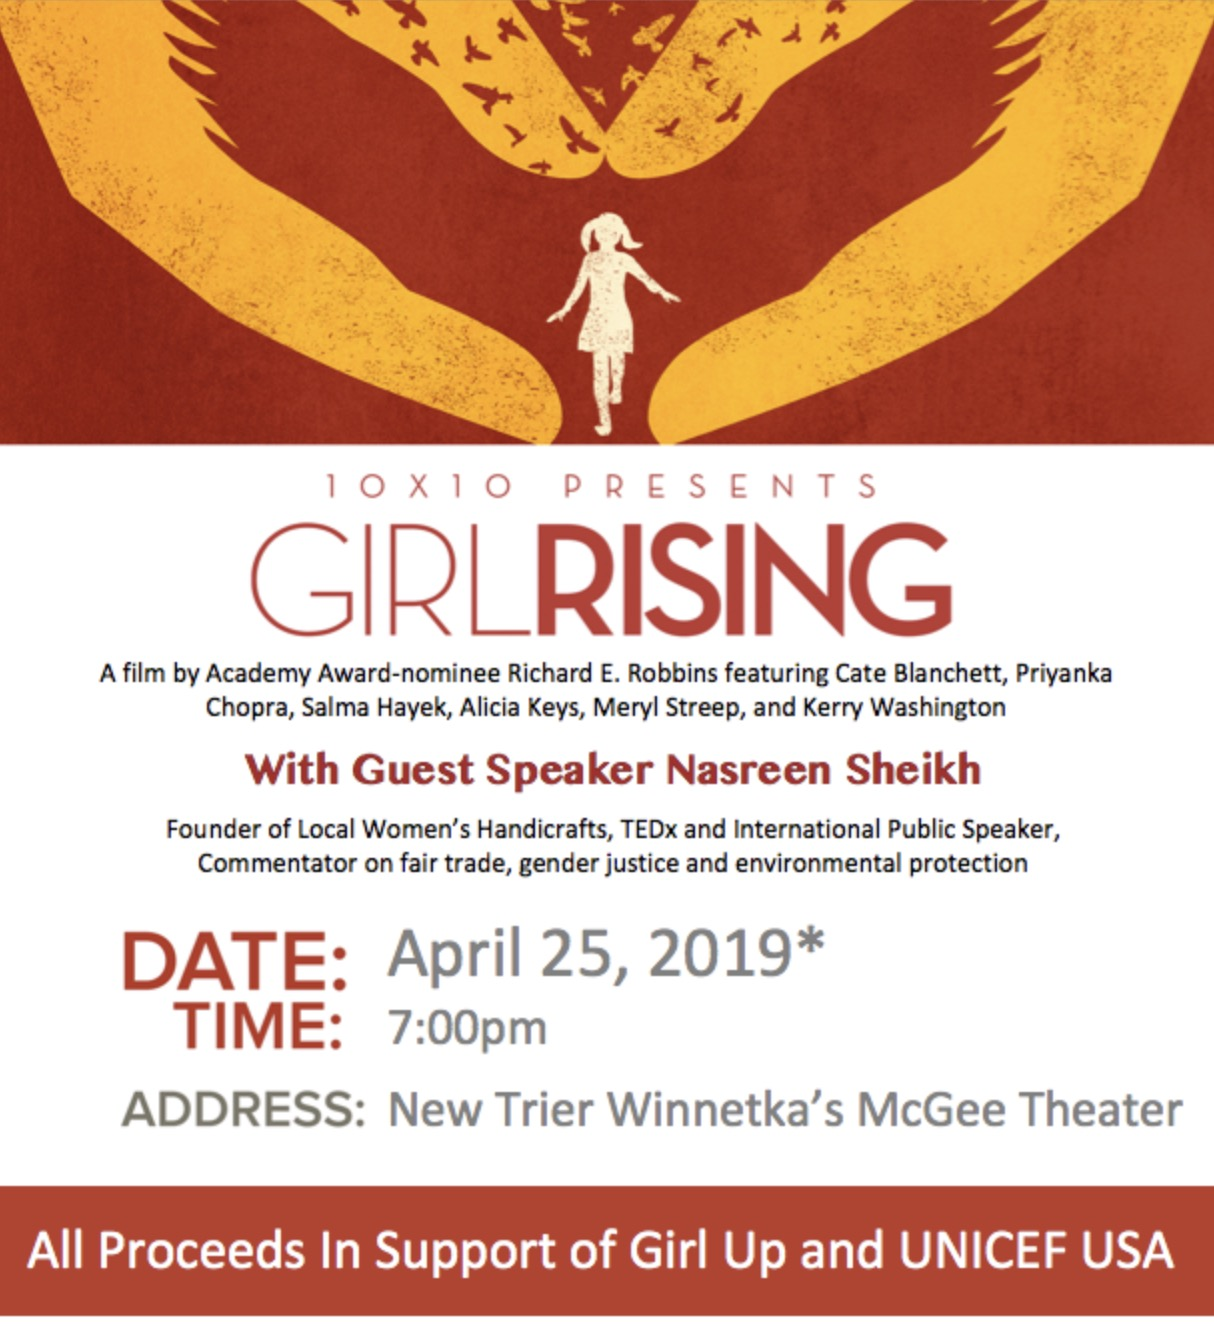 Girl Rising Film Screening with Guest Speaker Nasreen Sheikh